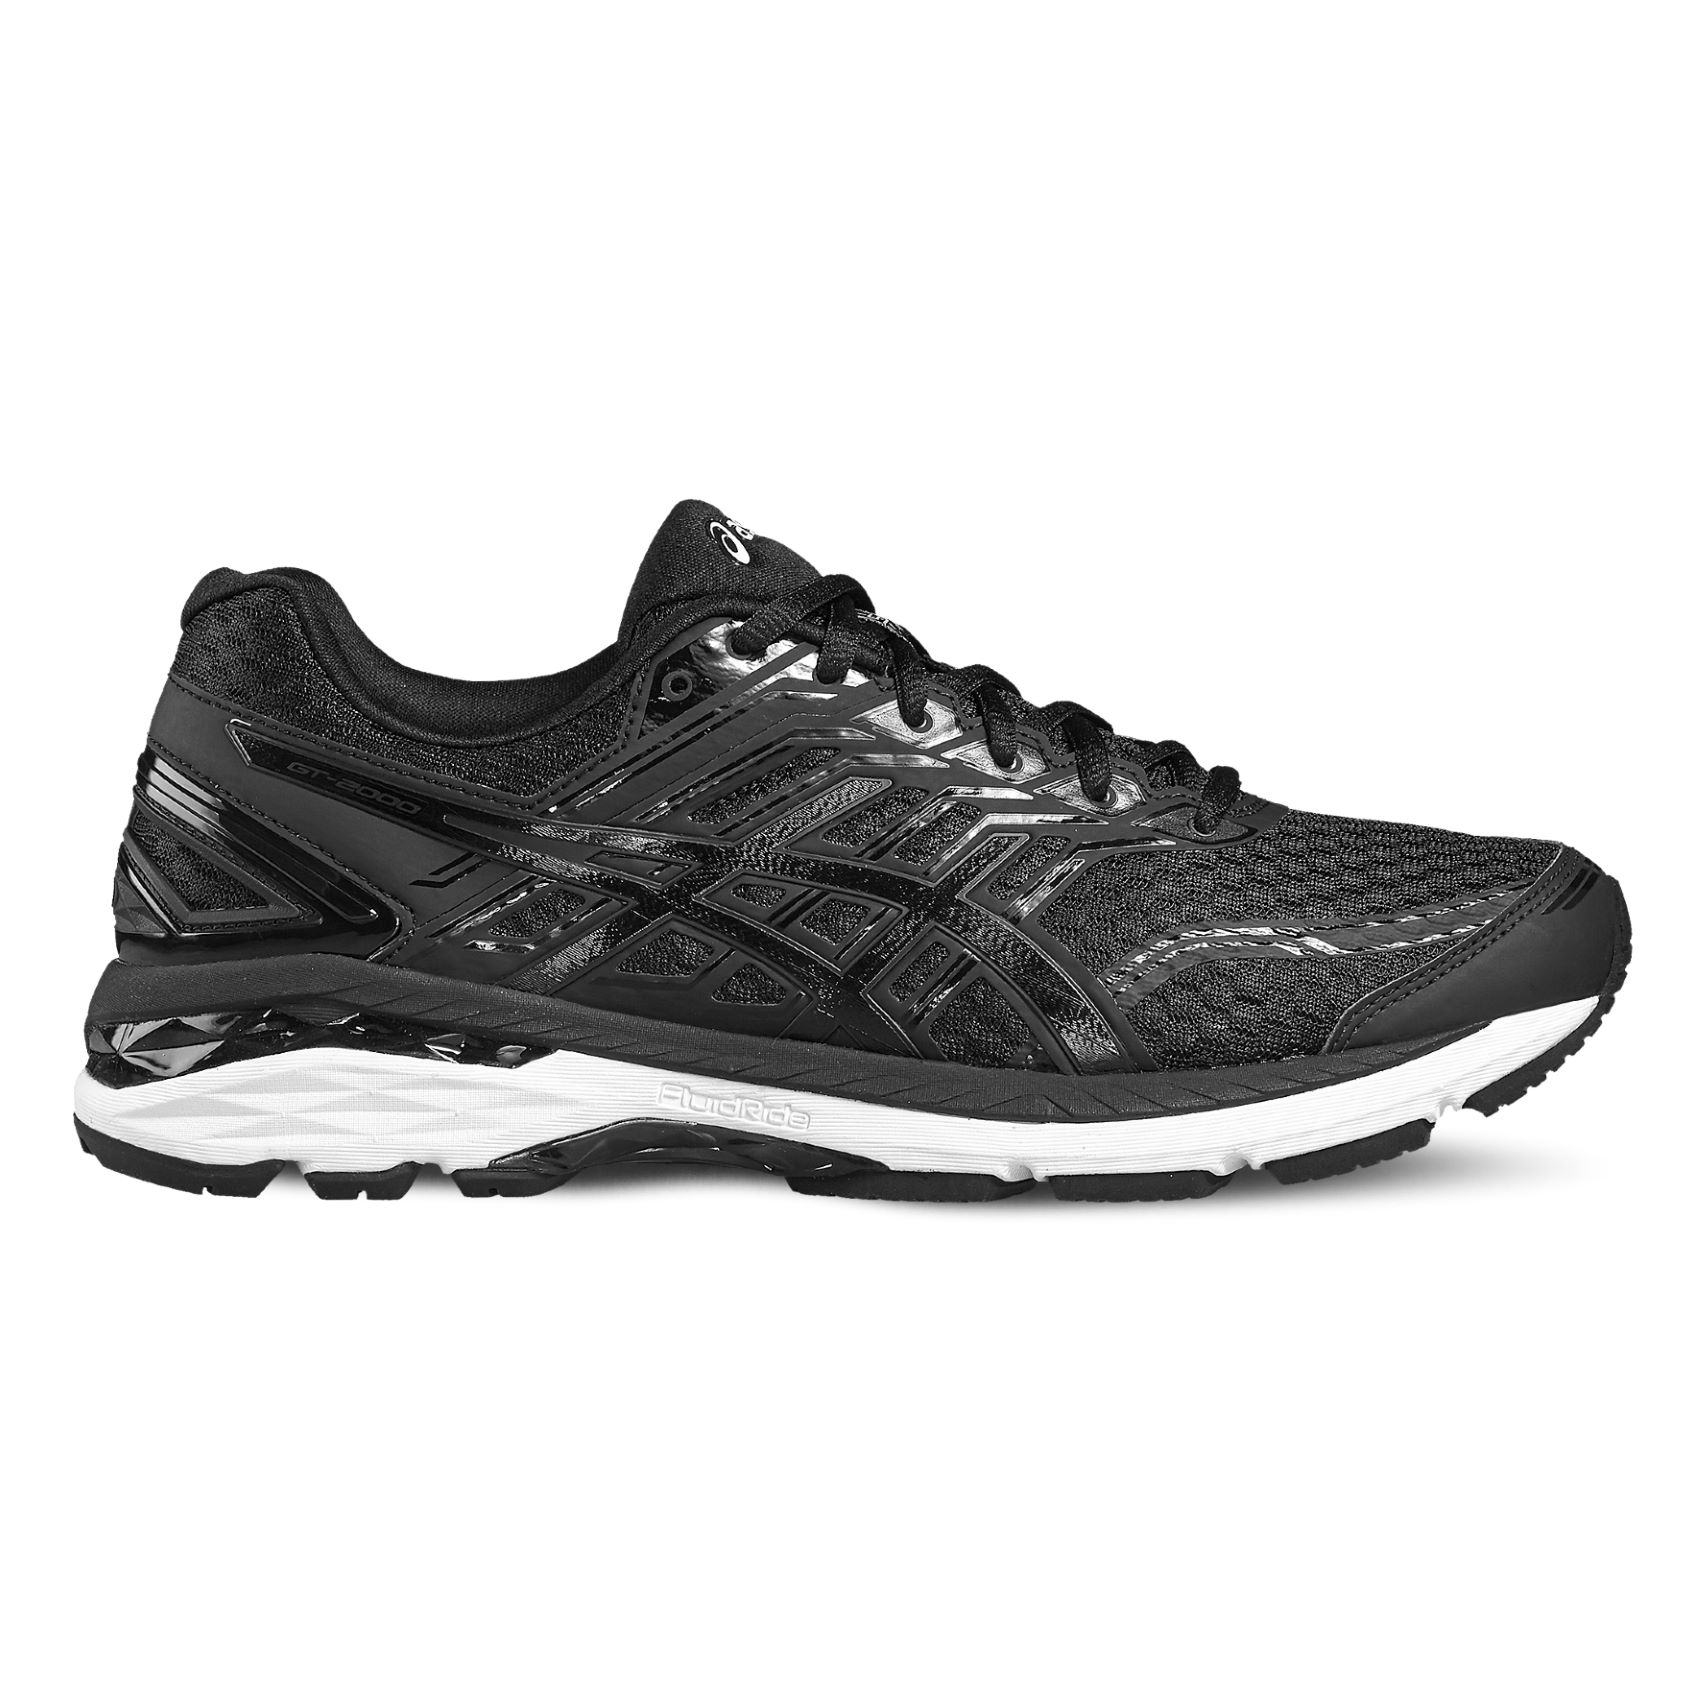 wiggle asics gt 2000 5 shoes stability running shoes. Black Bedroom Furniture Sets. Home Design Ideas